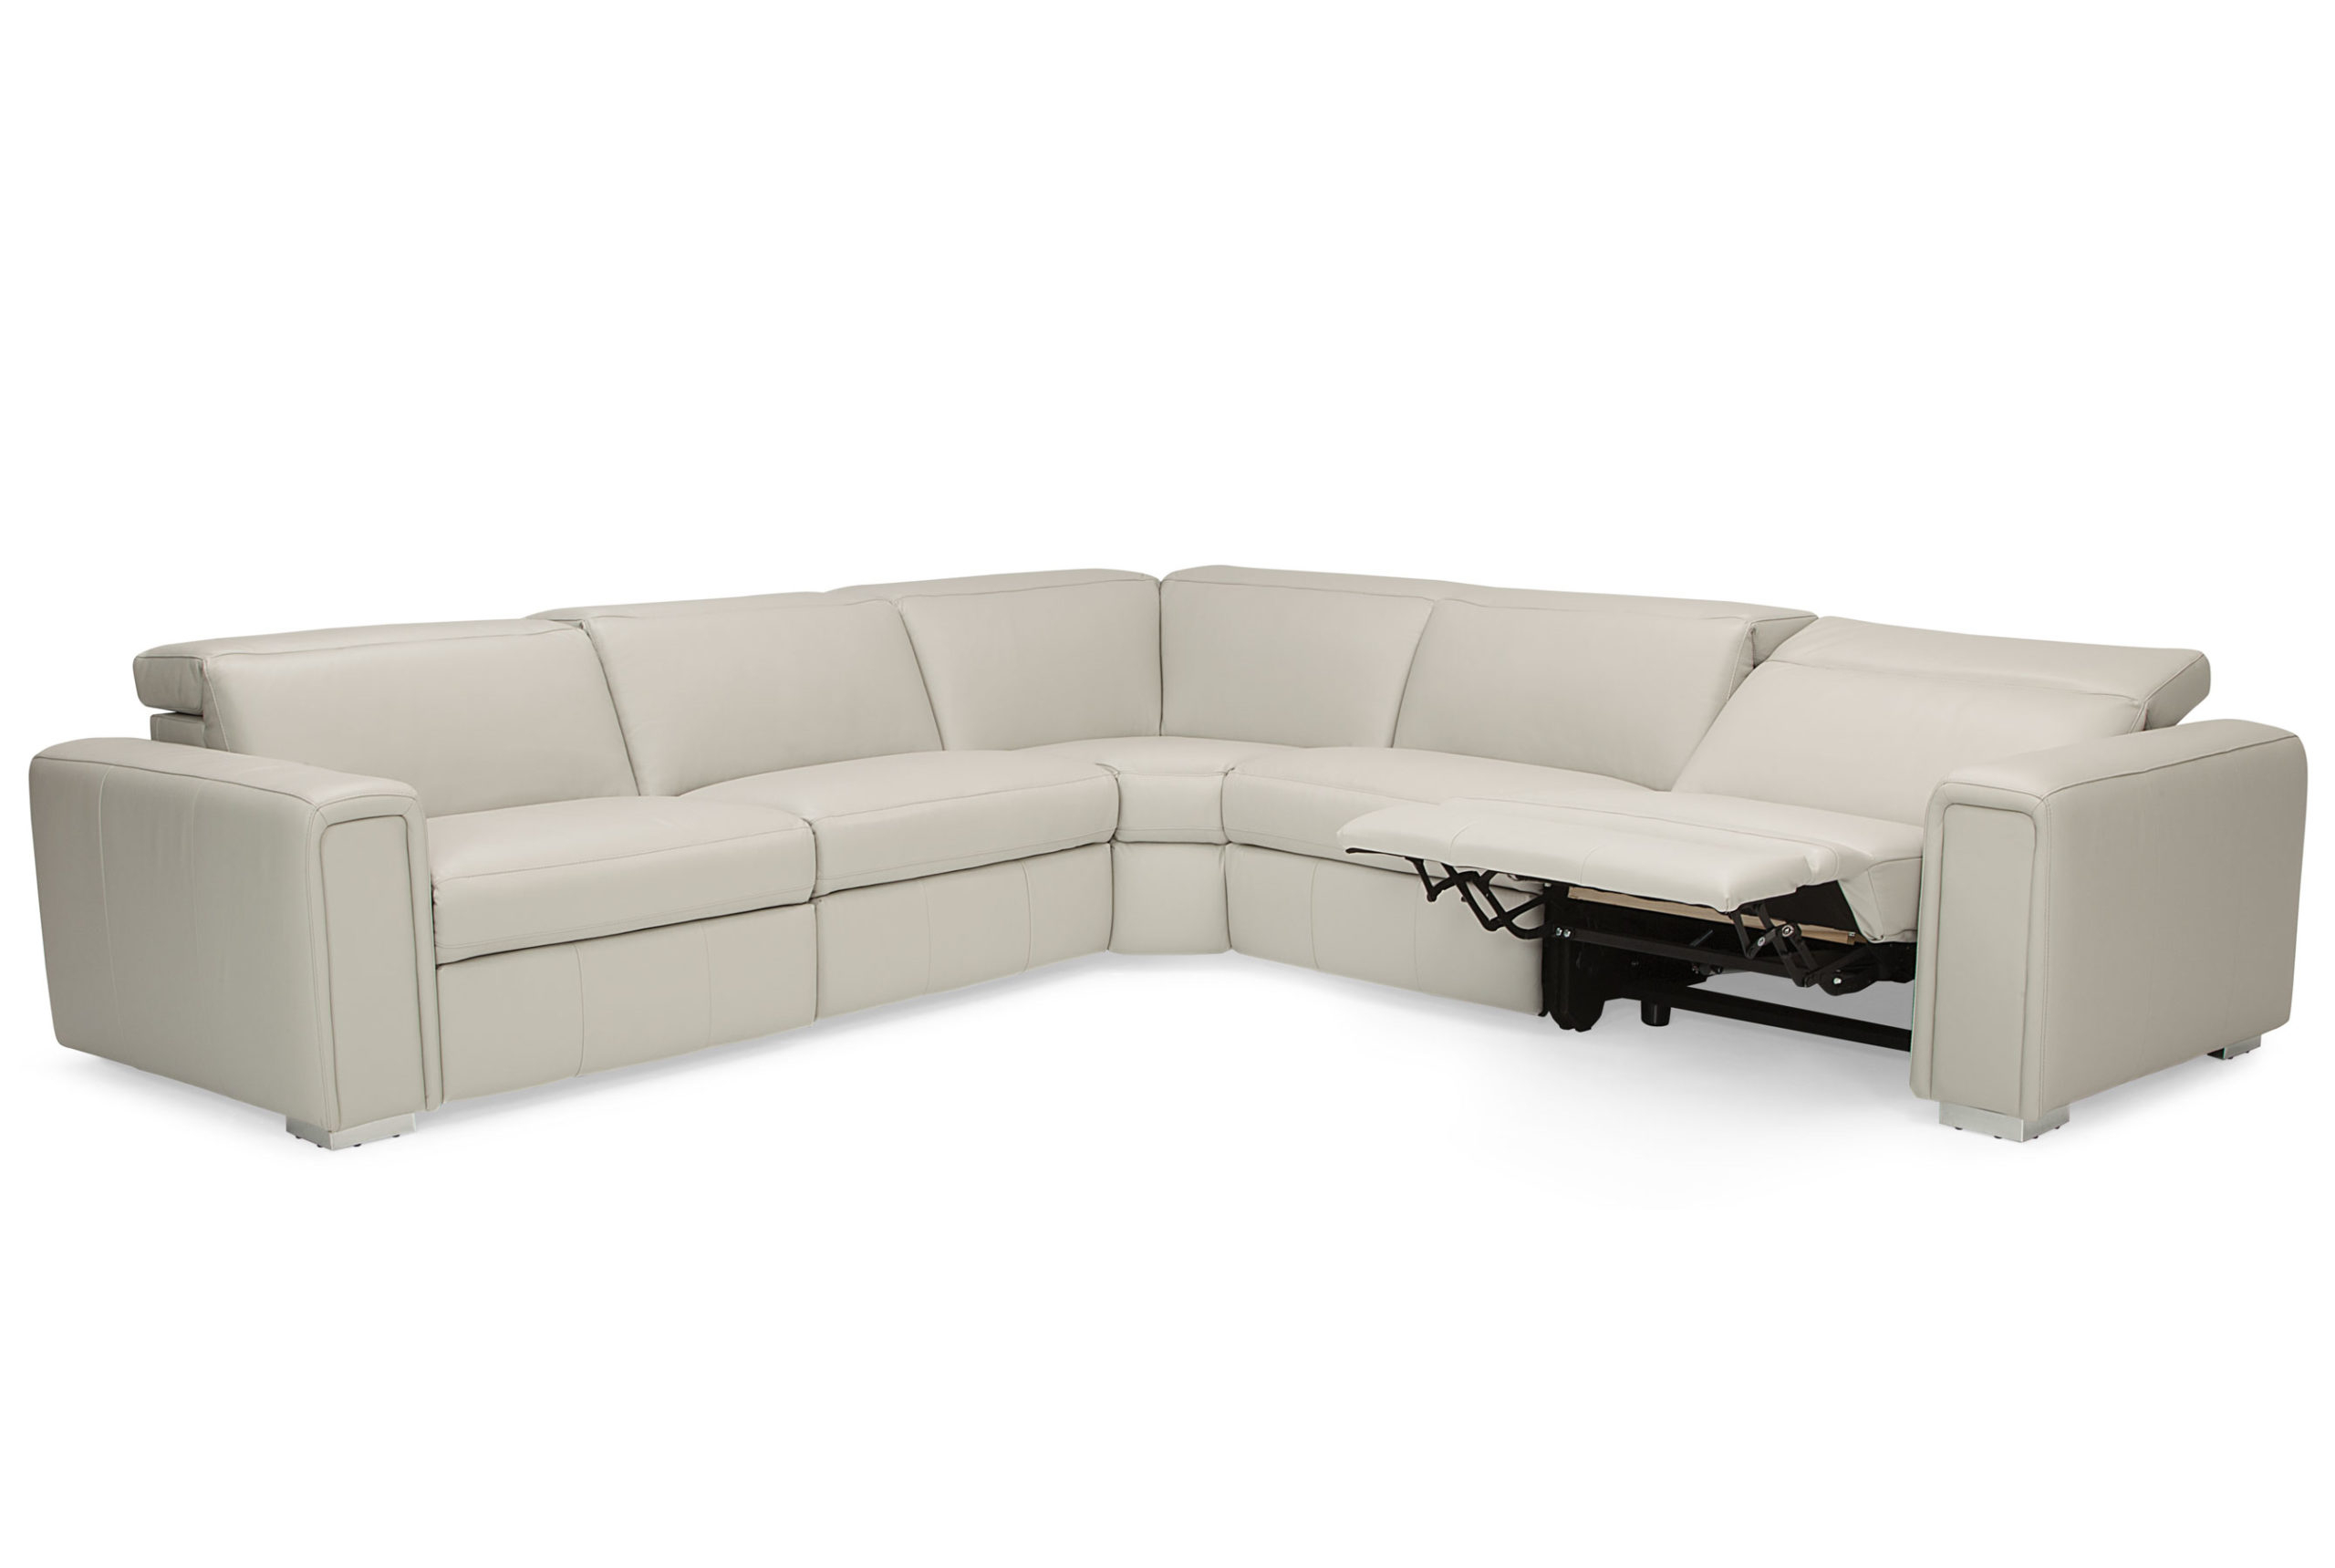 Palliser Titan 44004 Reclining Sectional With Power Intended For Famous Titan Leather Power Reclining Sofas (View 3 of 15)